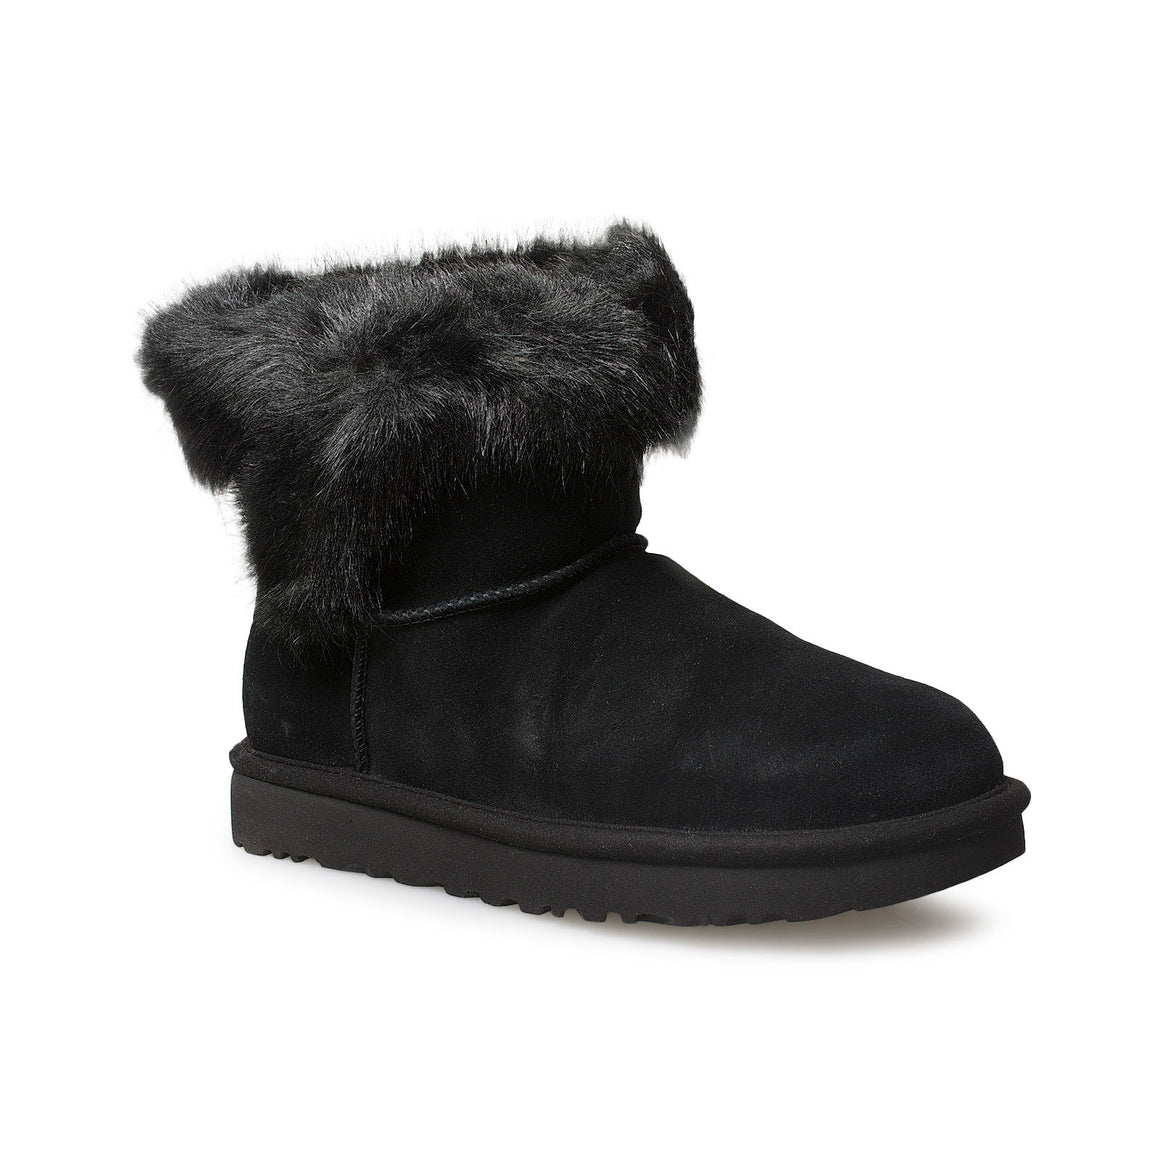 UGG Cathie Black Boots - Women's